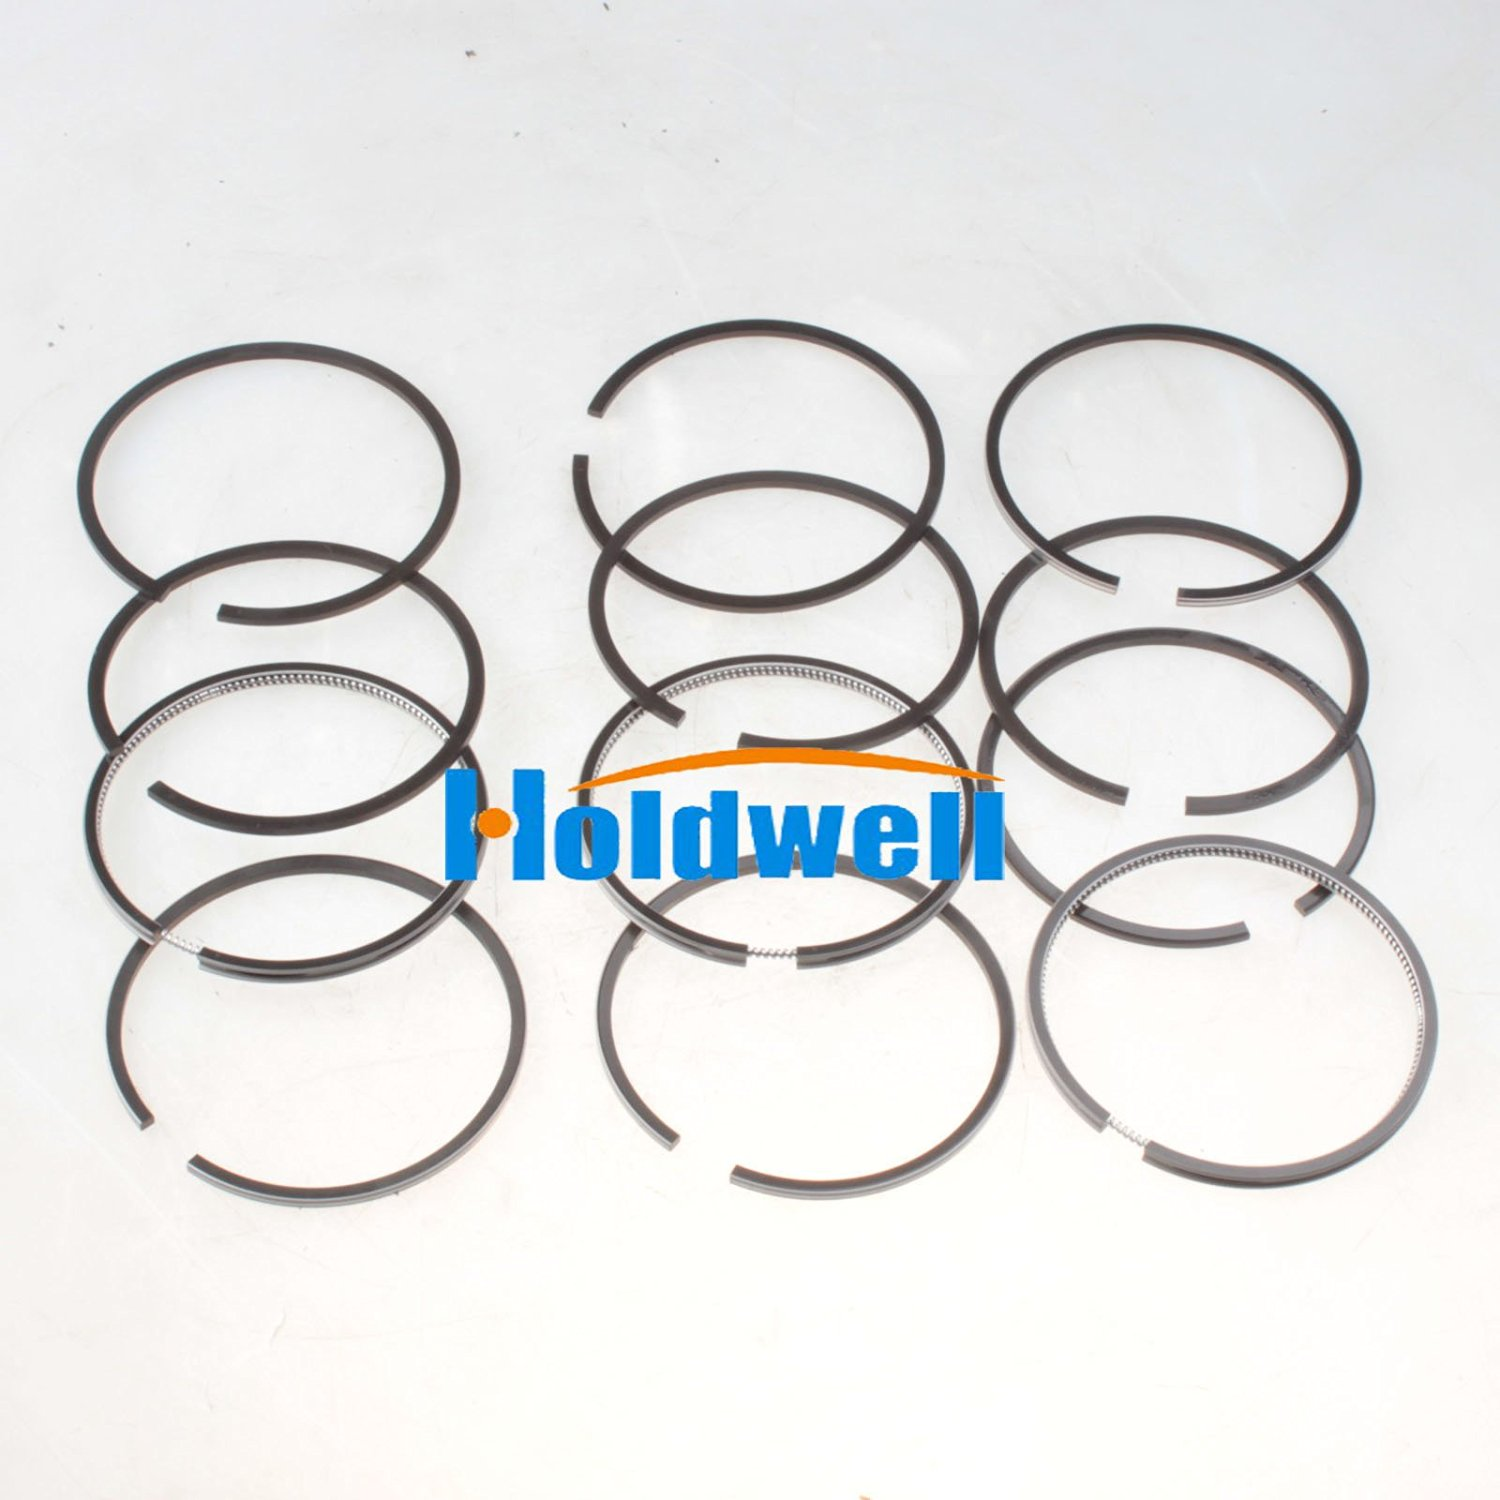 Holdwell Piston Ring 115107970 for Perkins 403 404 Series Engine